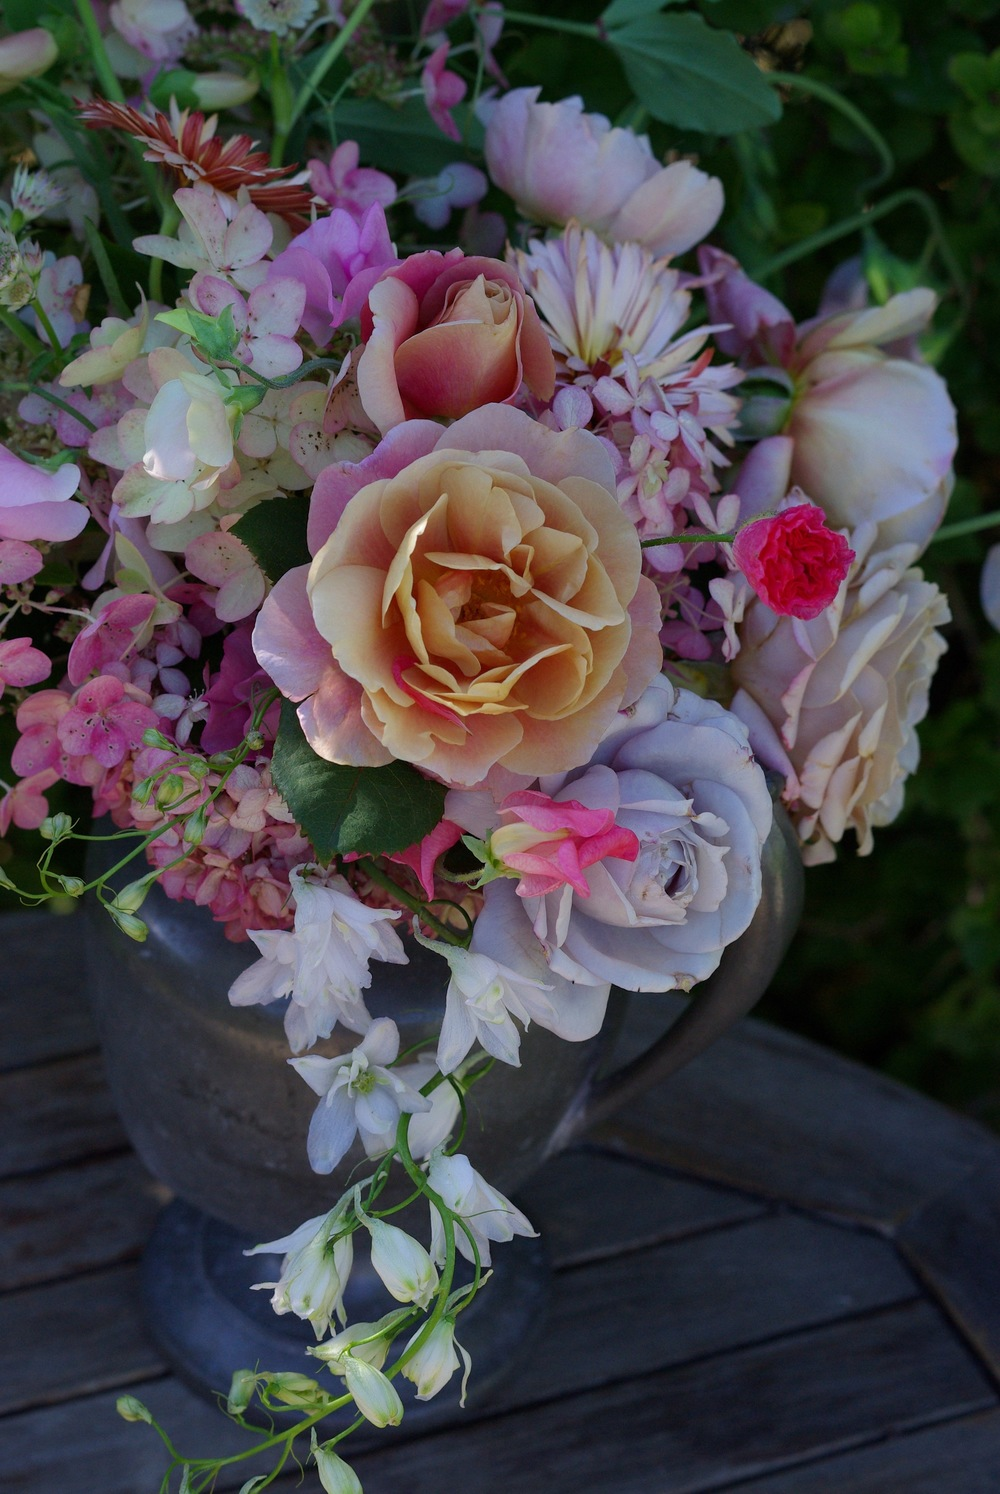 Early September - delphinium, hydrangea, roses, sweet peas, shirley poppies, calendula, astrantia